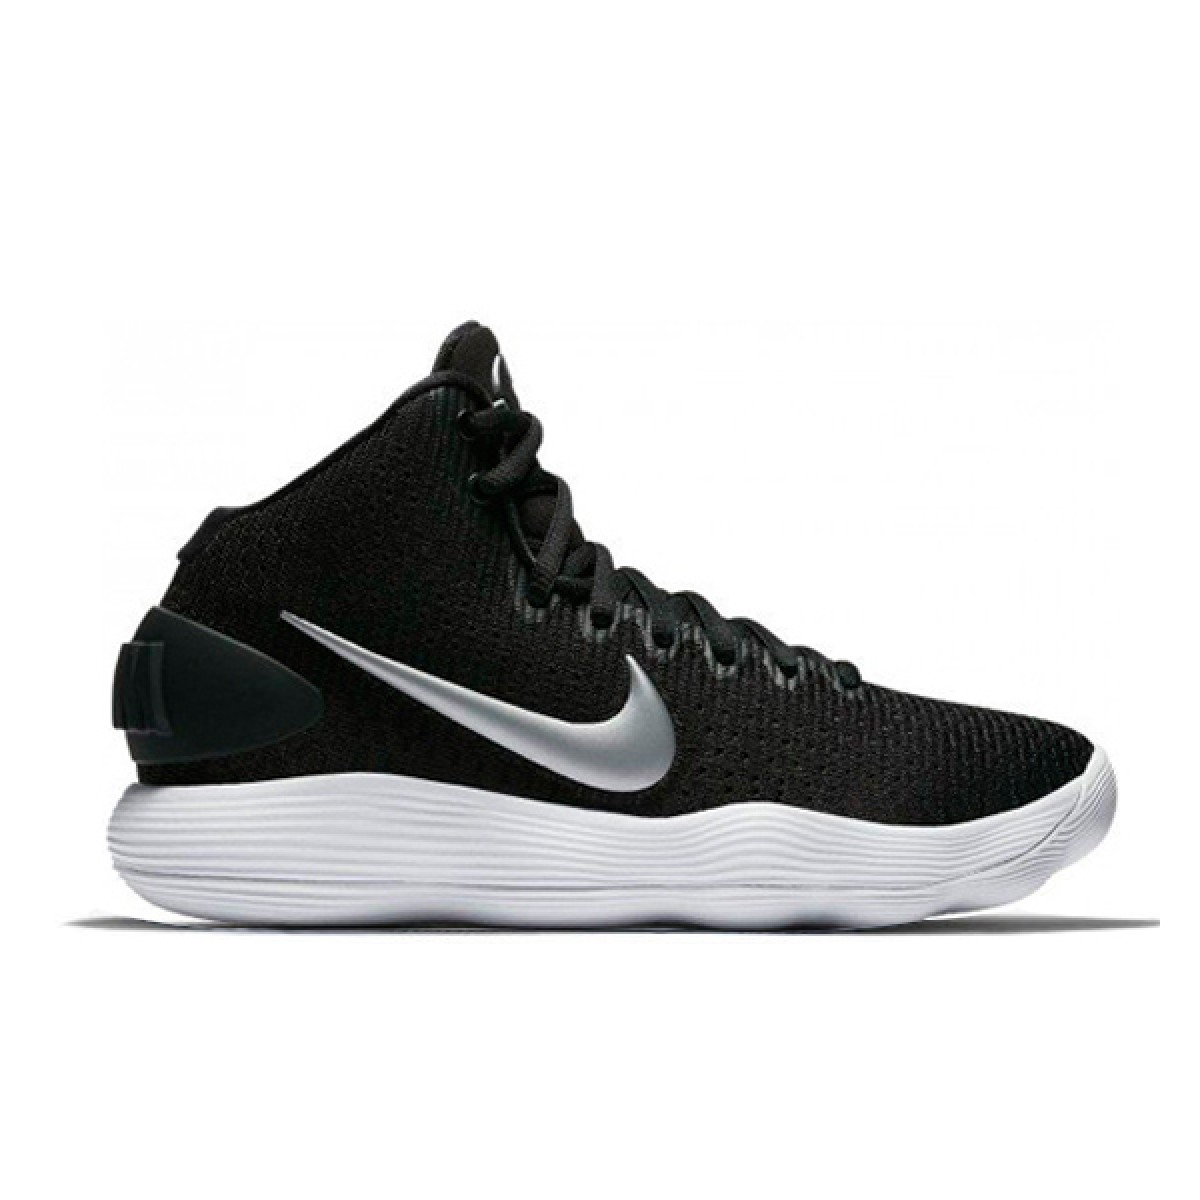 Nike Womens Hyperdunk 2017 'Black'